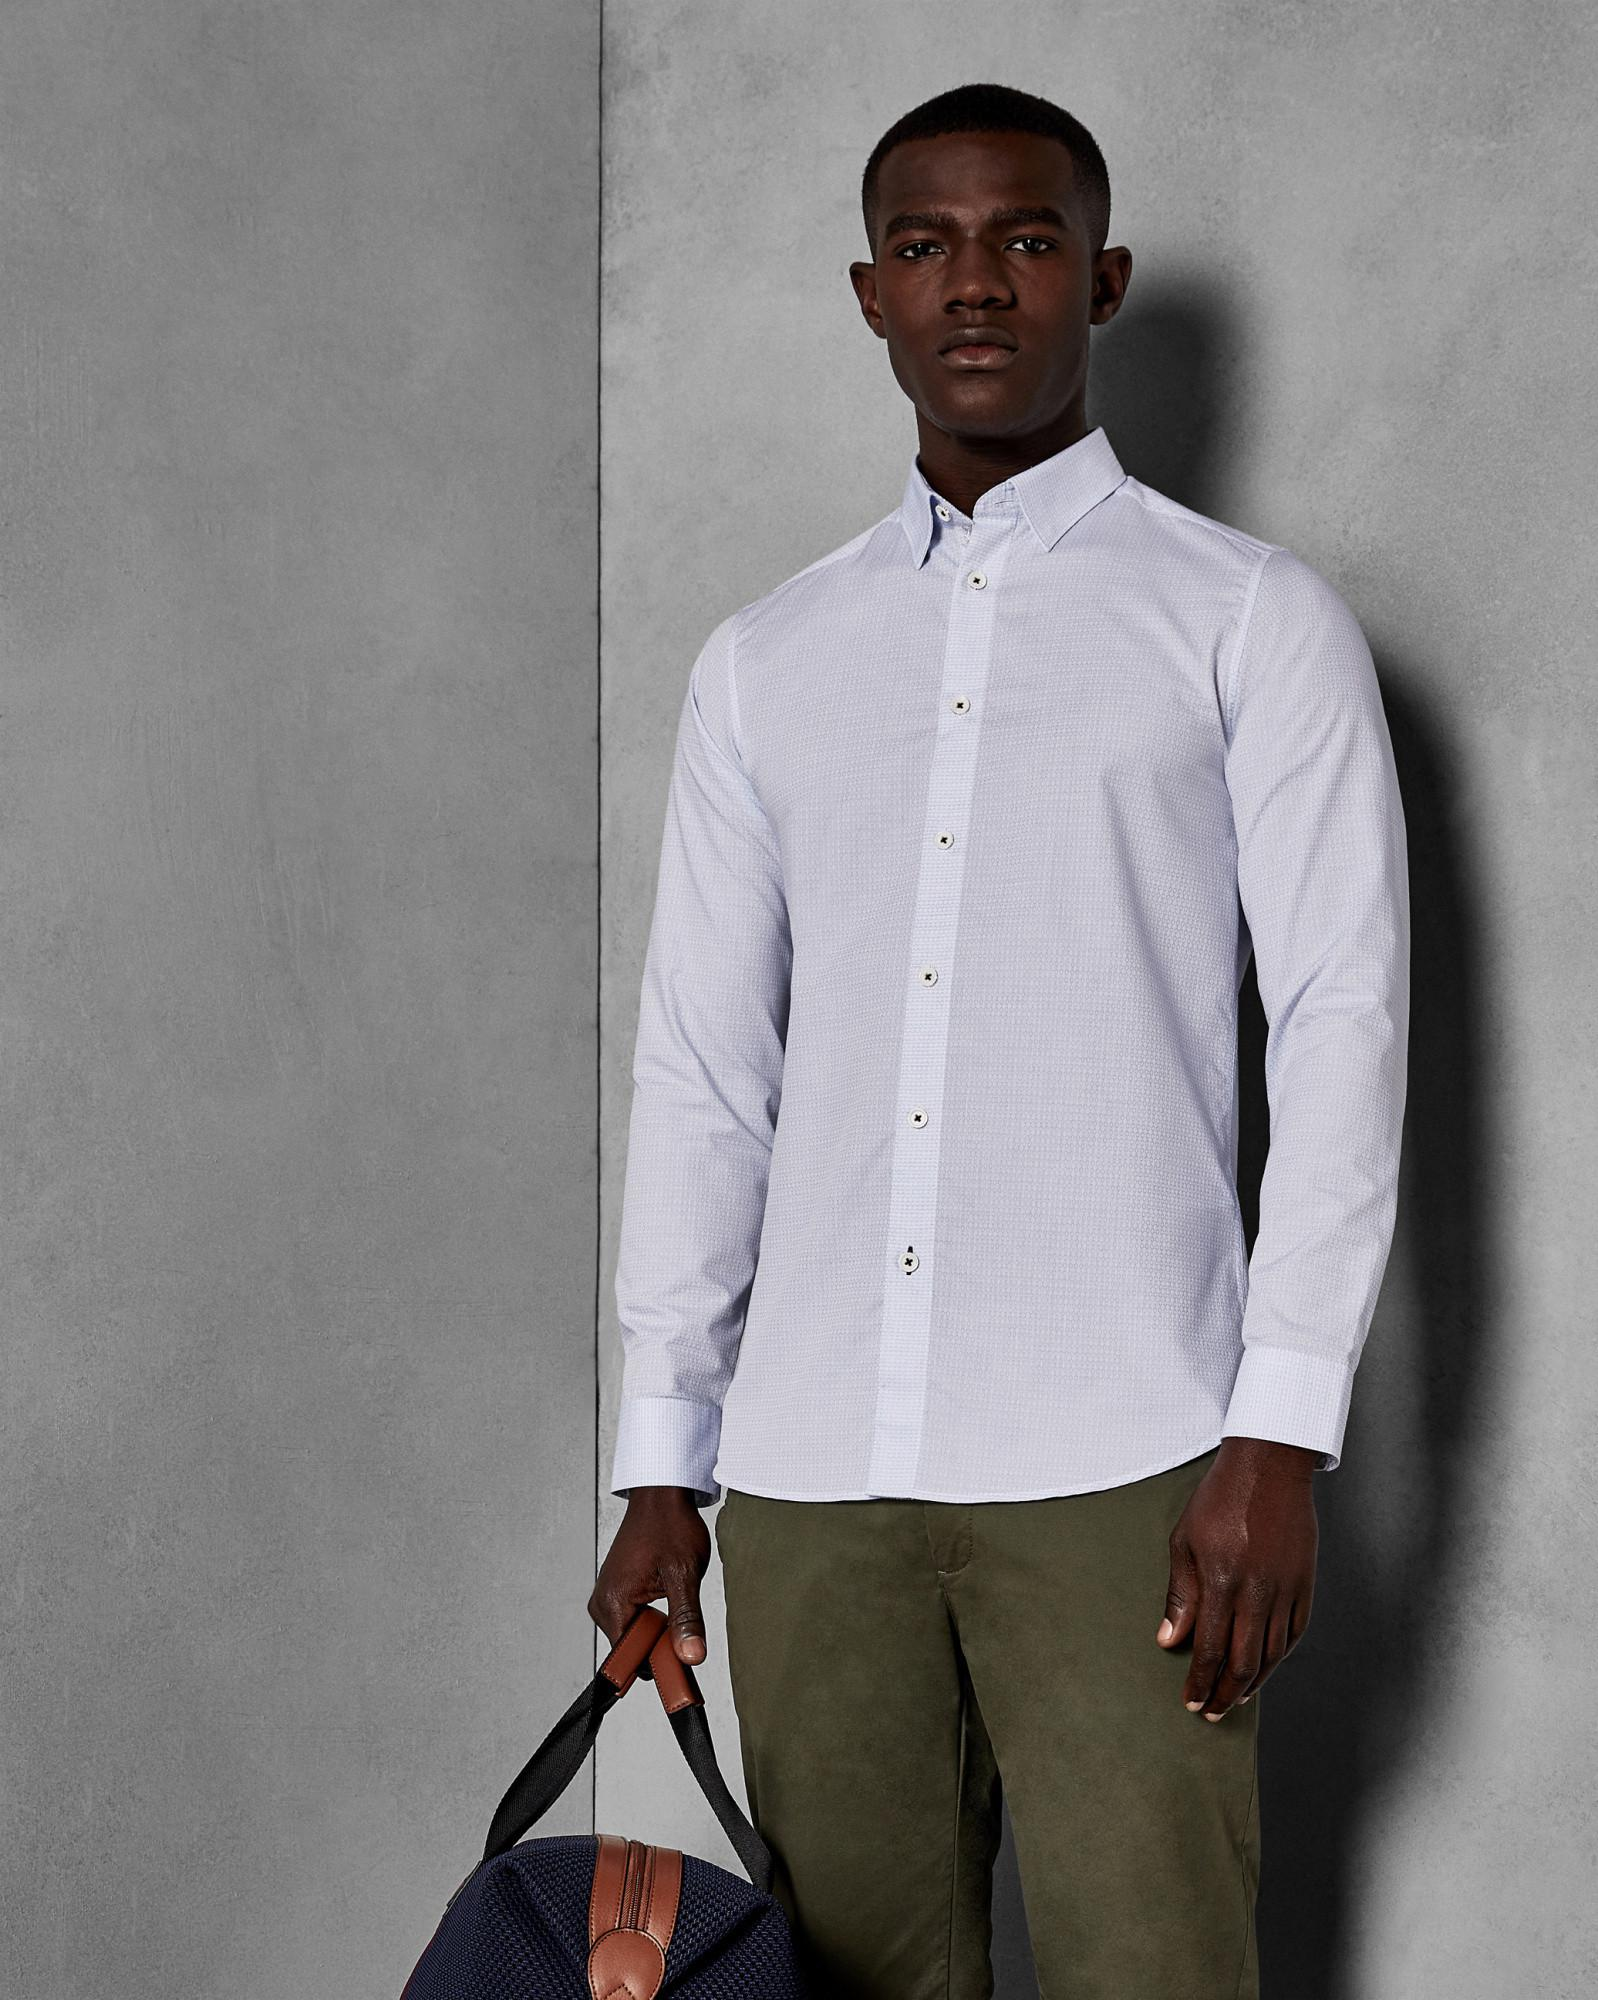 92b5b8cb5a61f Ted Baker Cotton Jacquard Shirt in White for Men - Lyst